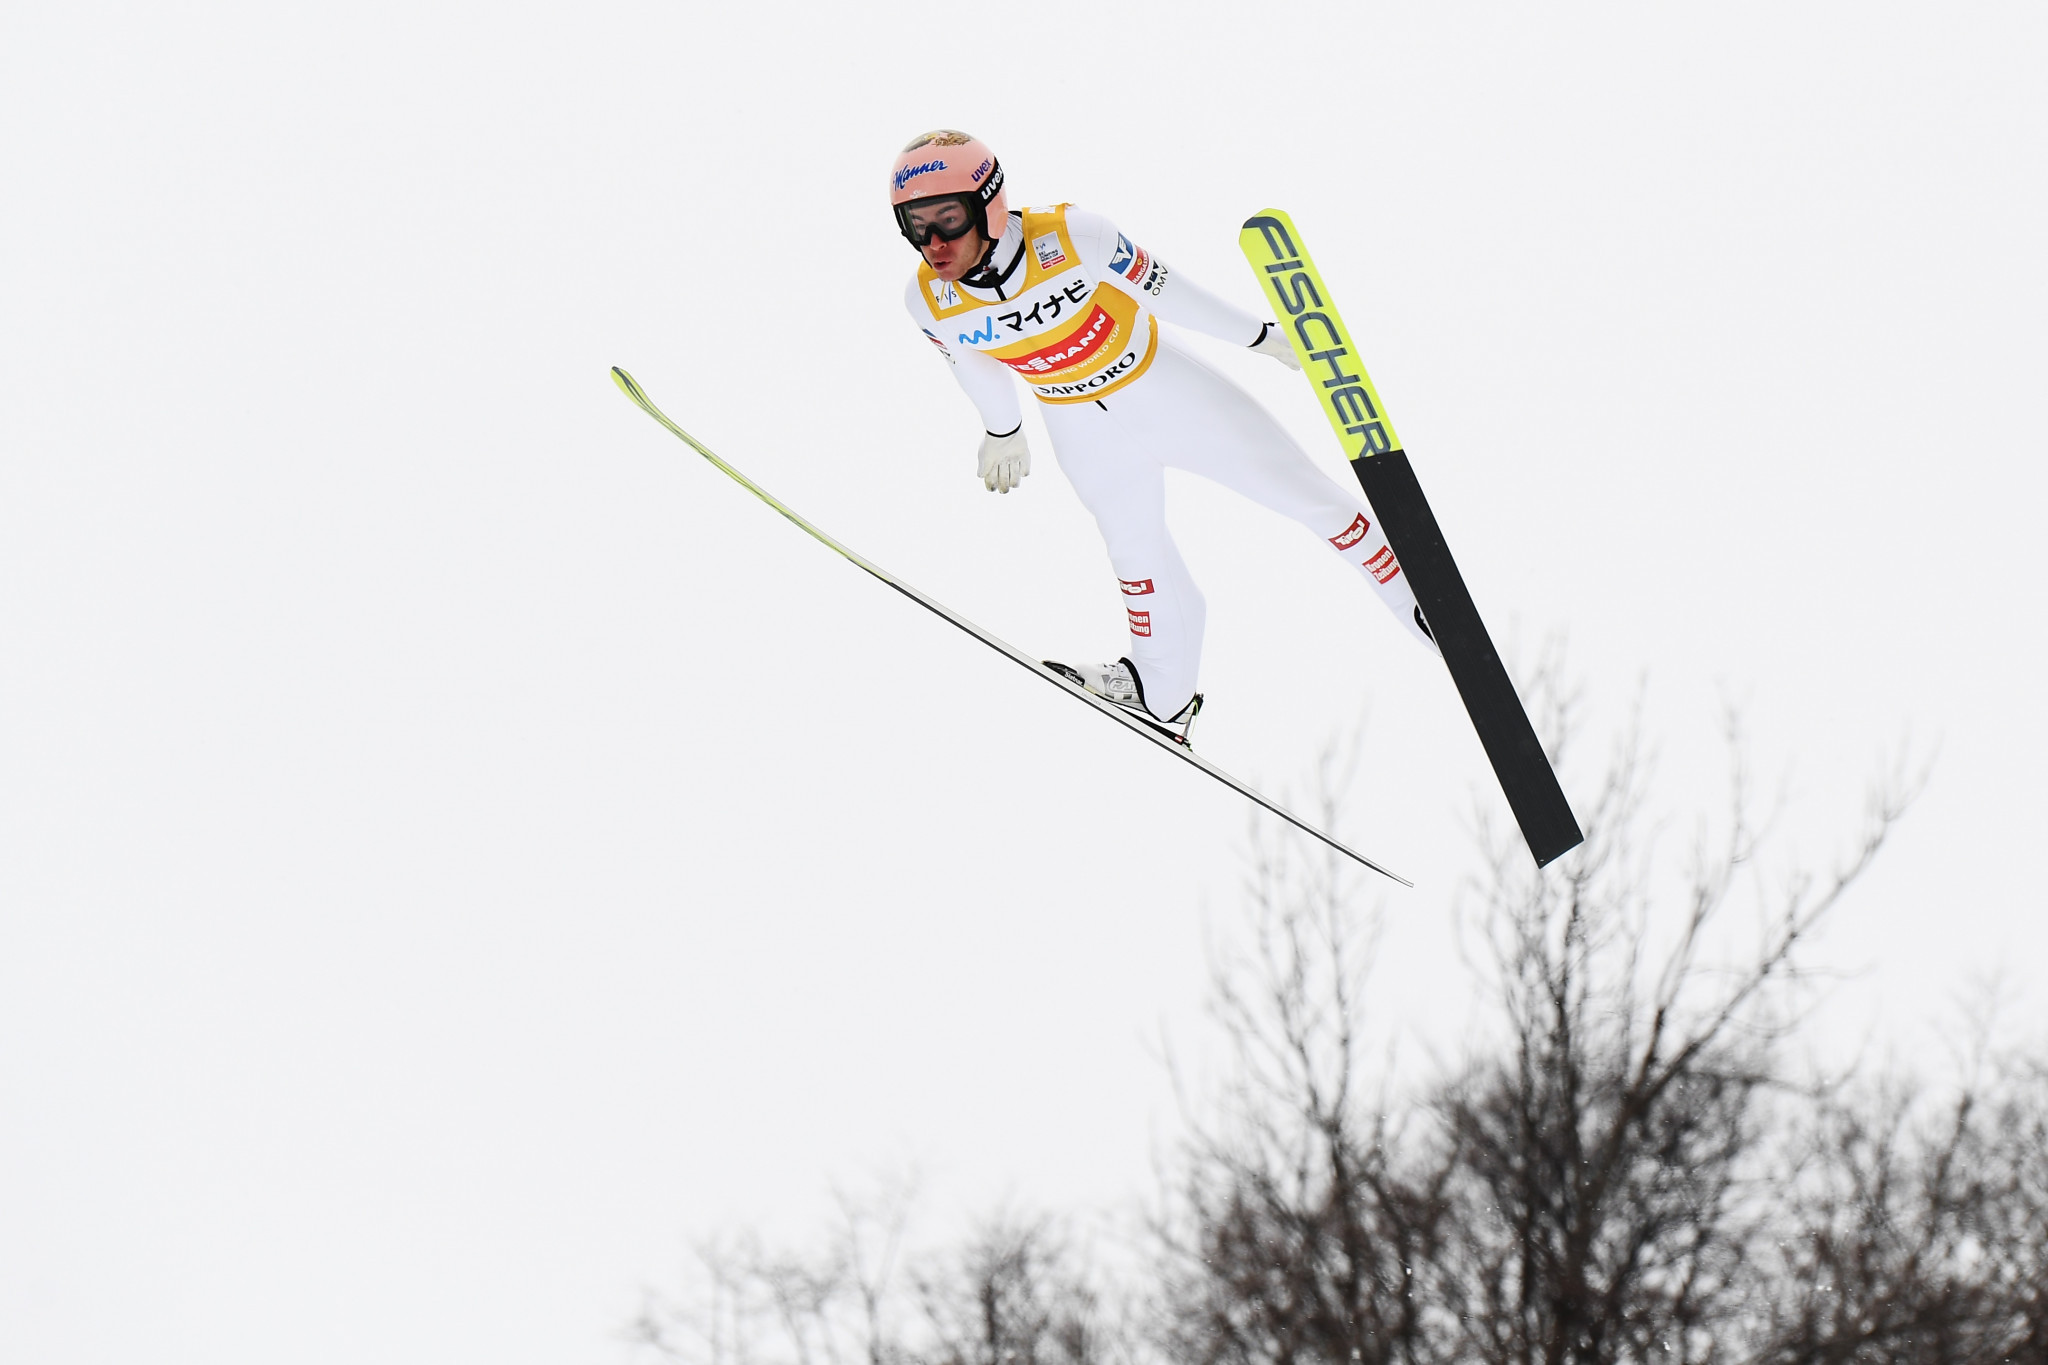 Stefan Kraft extends FIS Ski Jumping World Cup lead with Sapporo win